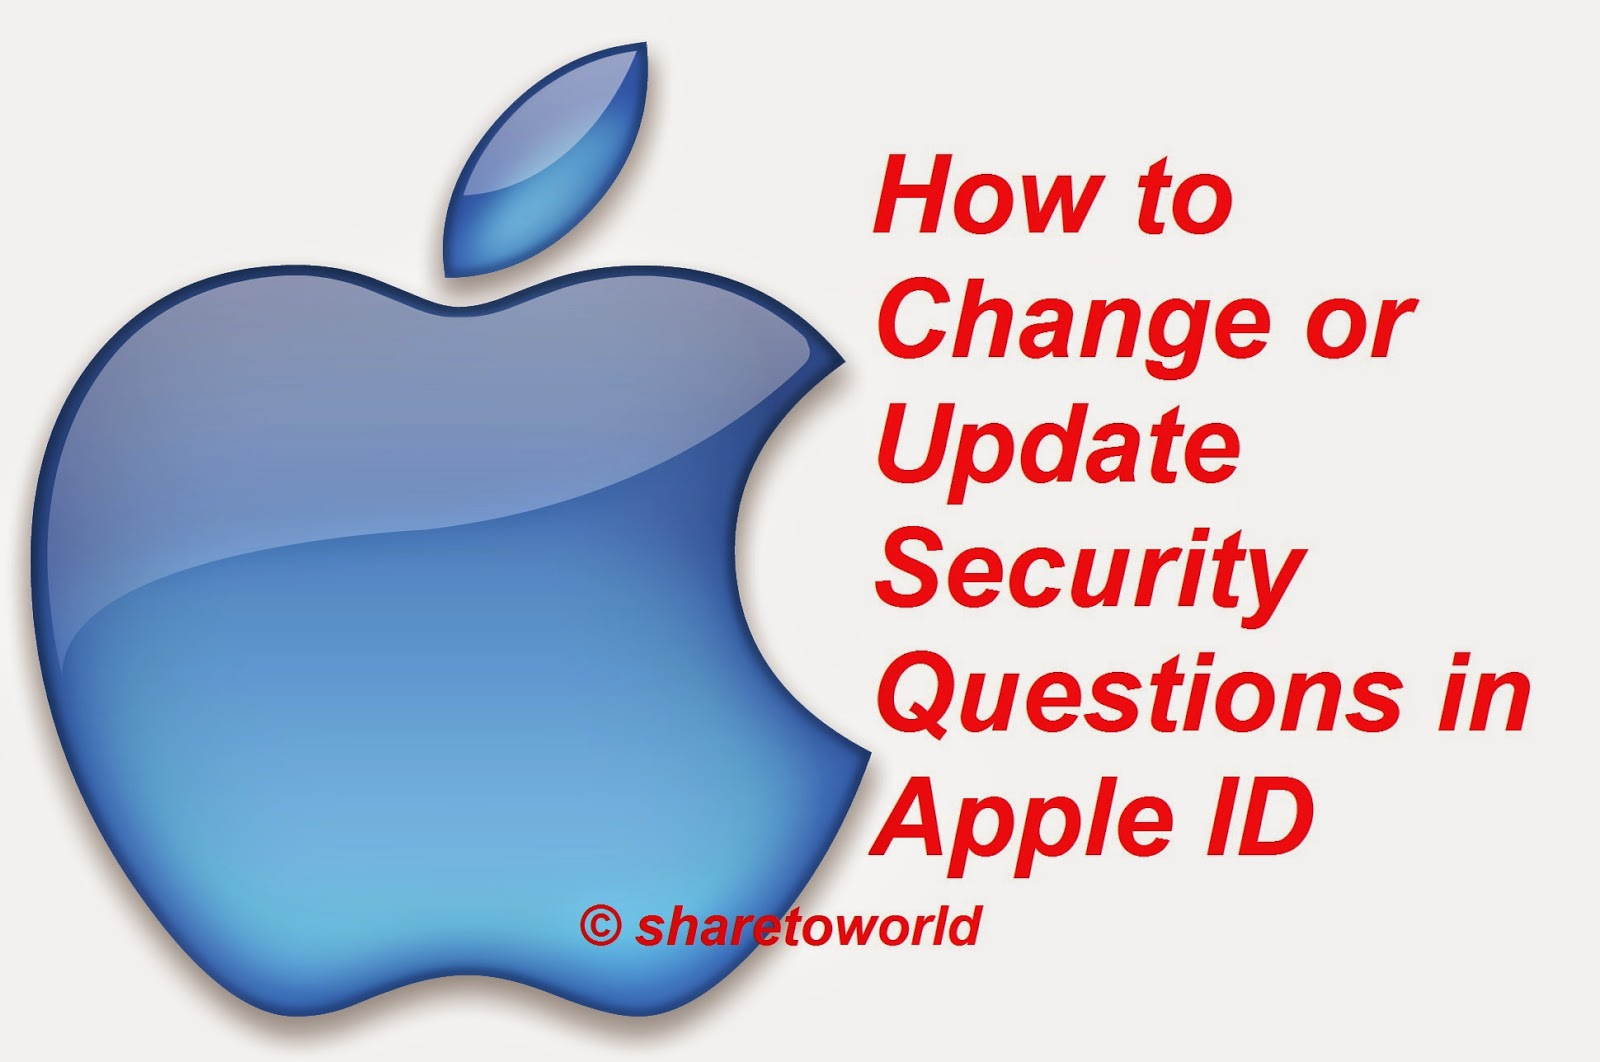 How to Change or Update Security Questions in Apple ID